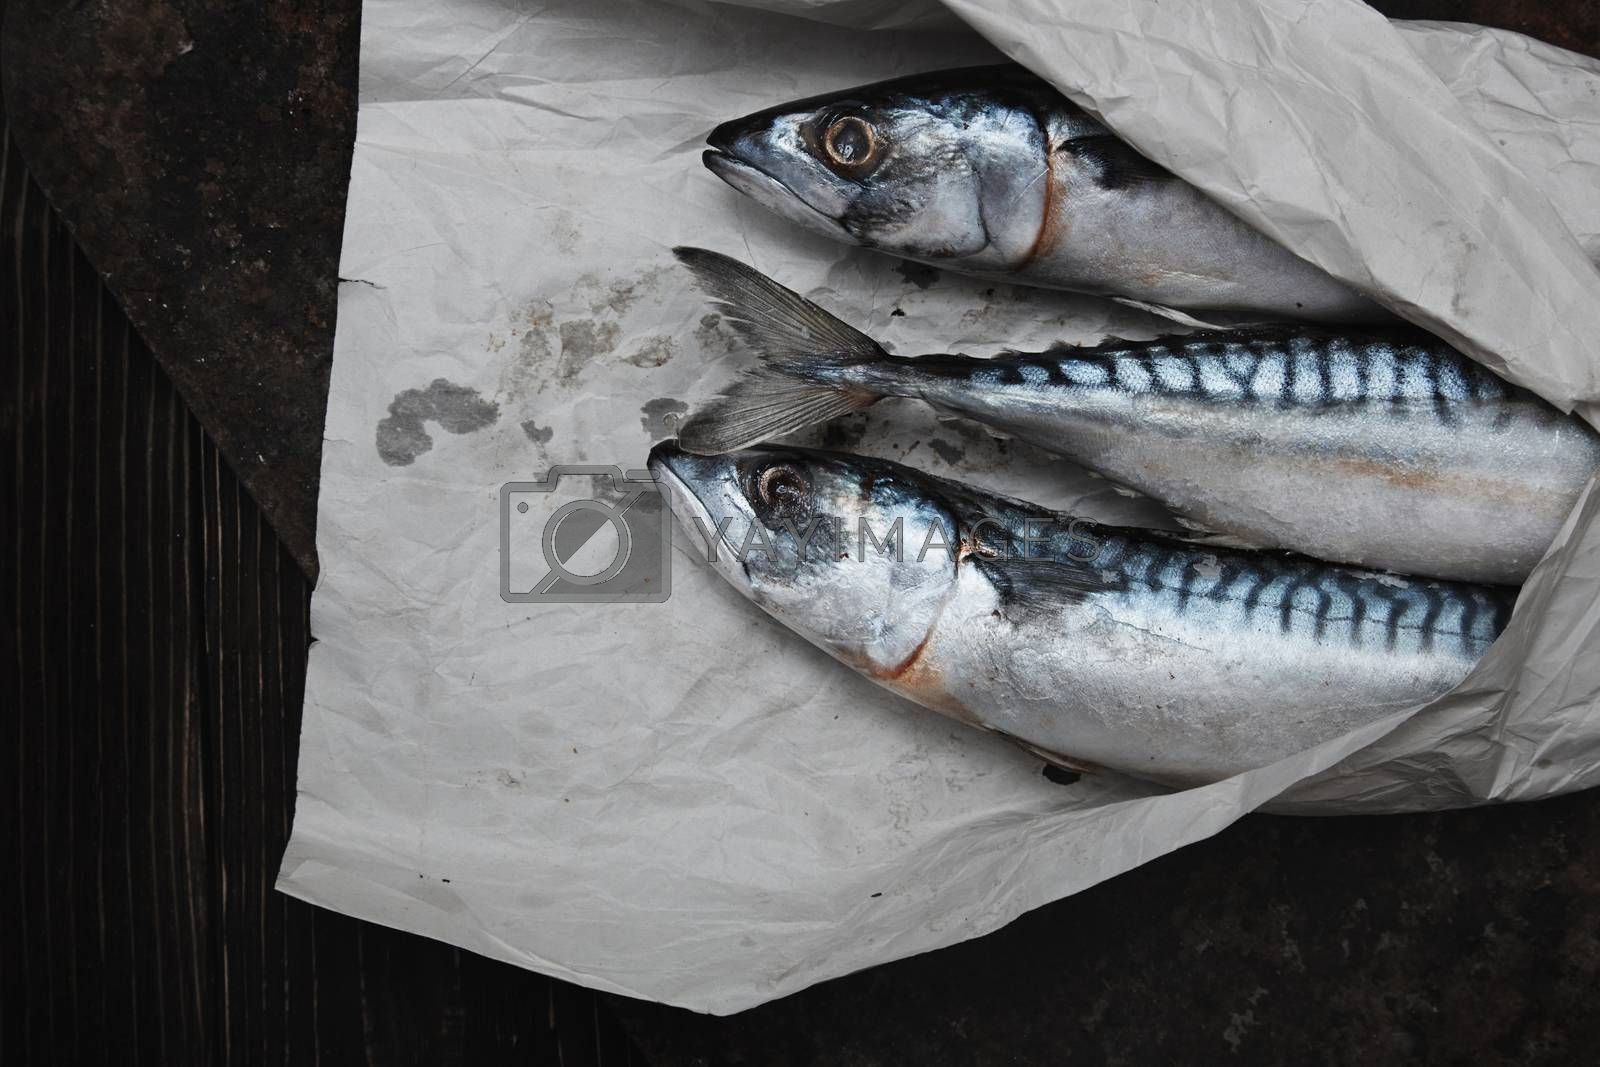 Scomber fish in wrapping paper by Novic